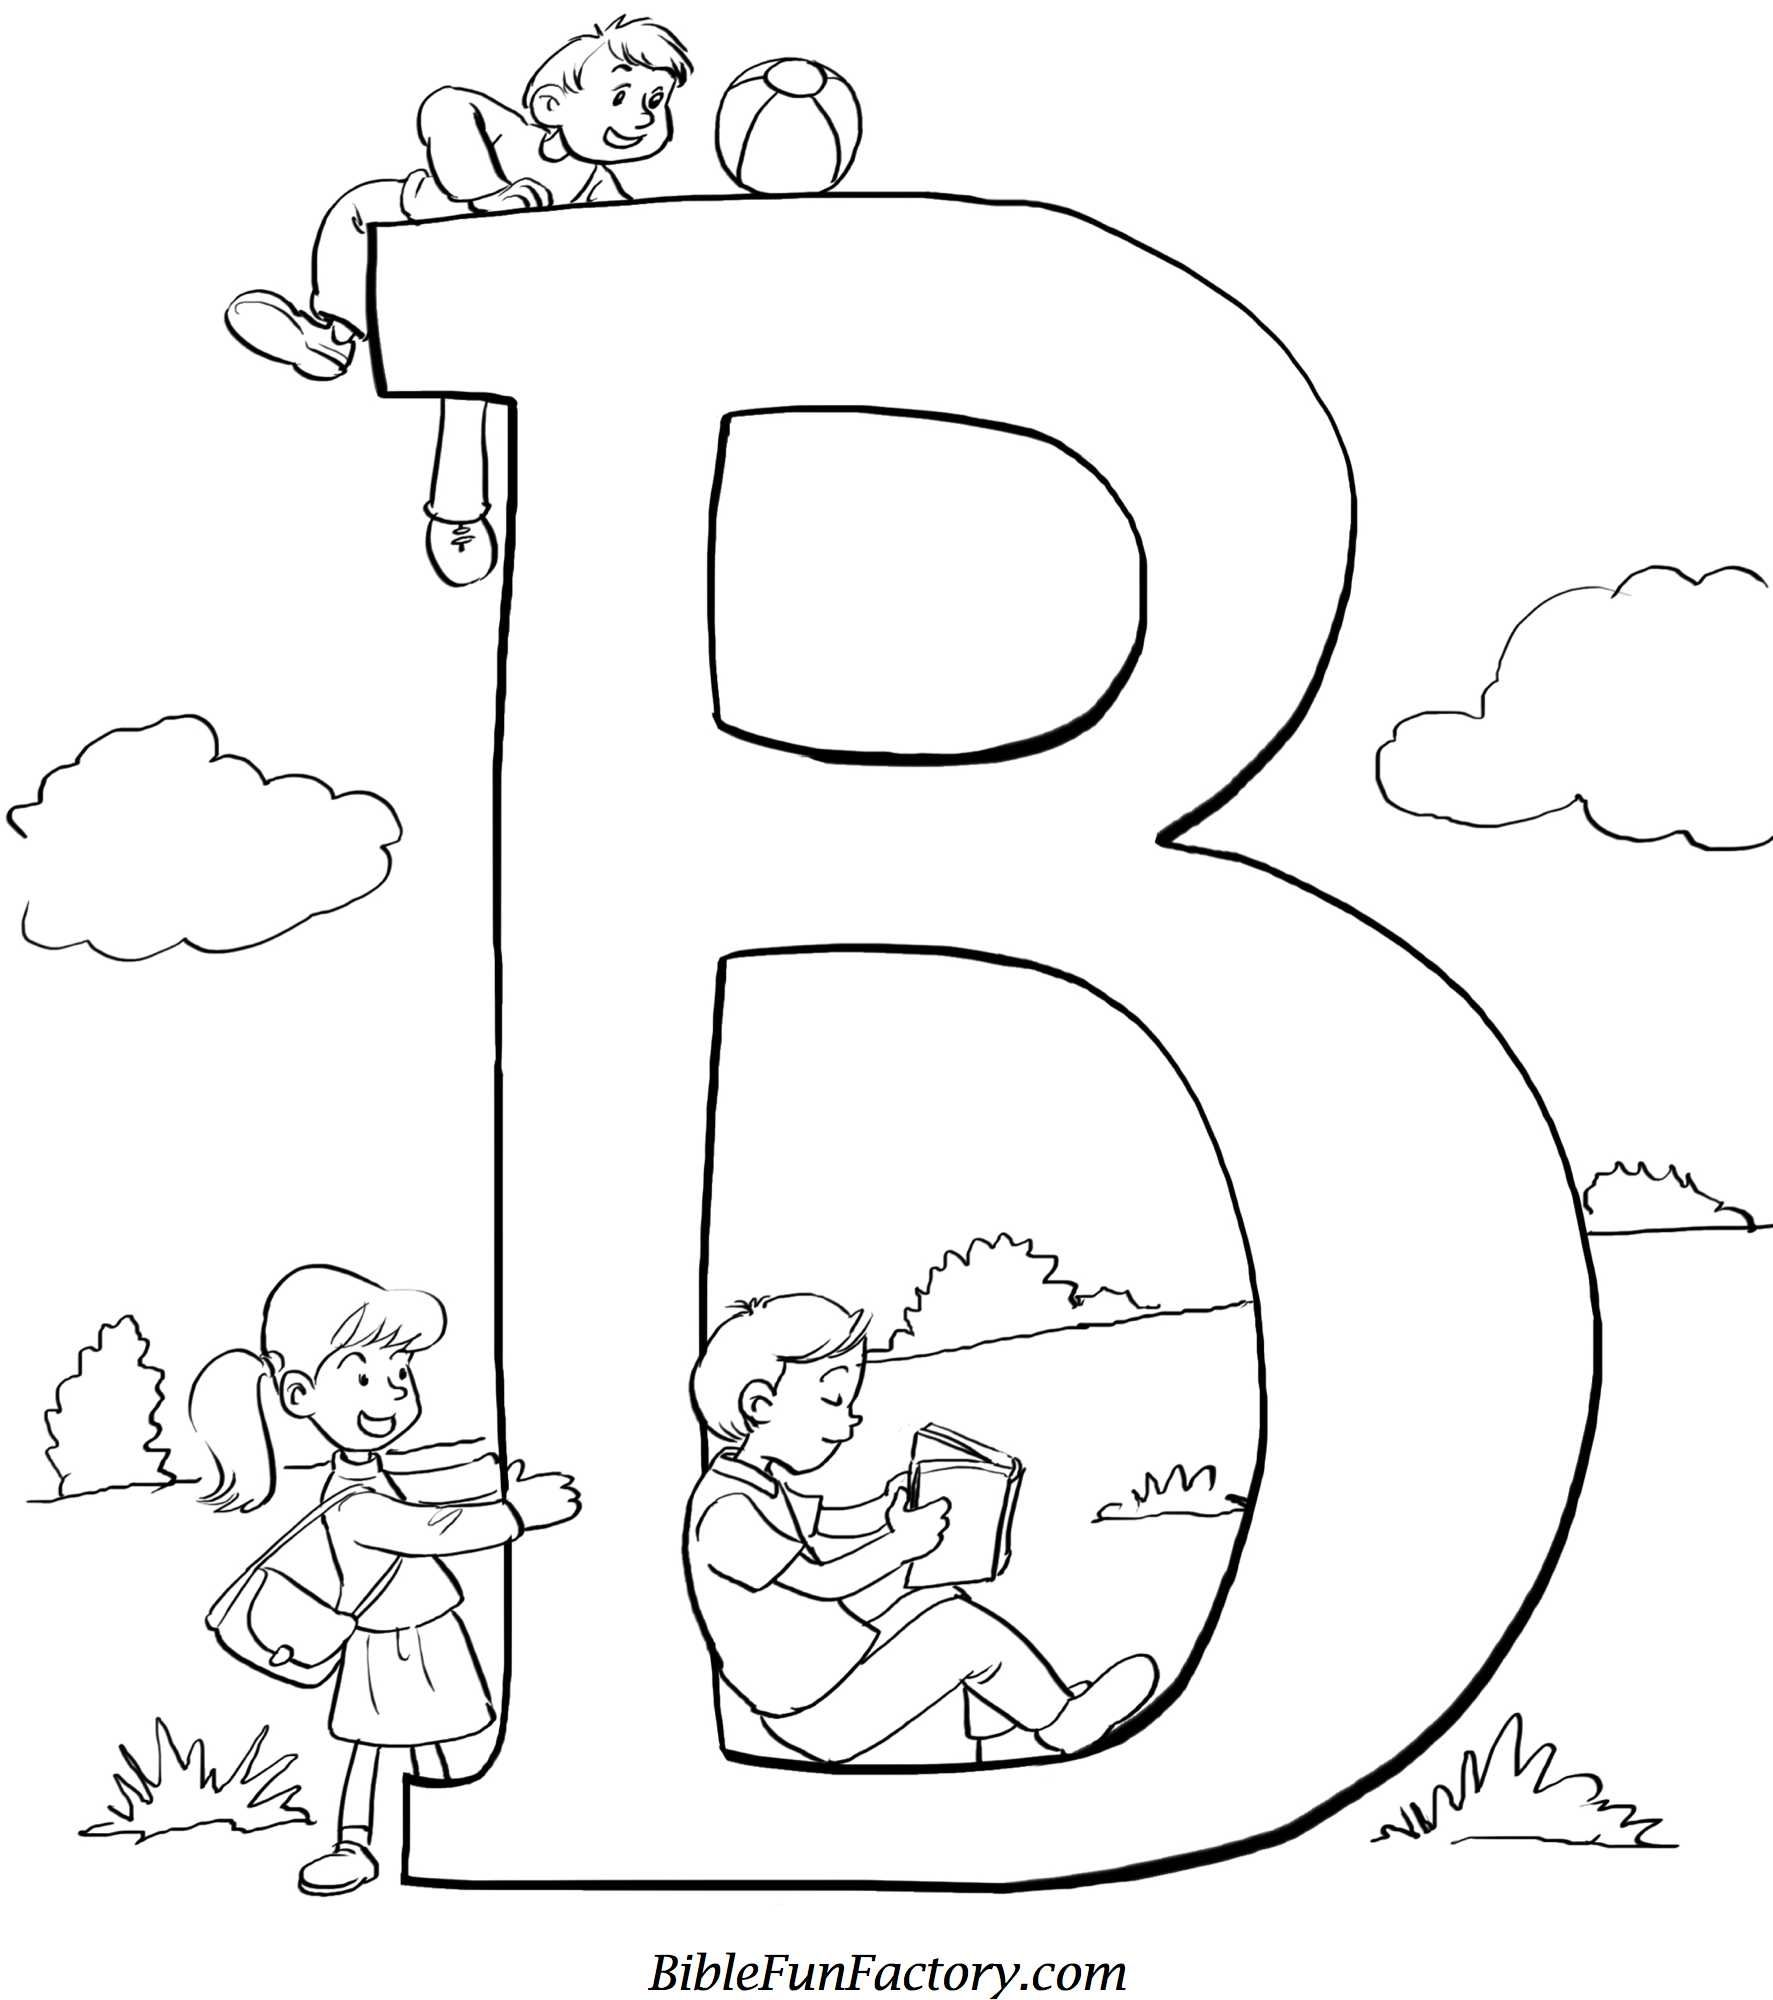 bisforbible | Coloring pages | Pinterest